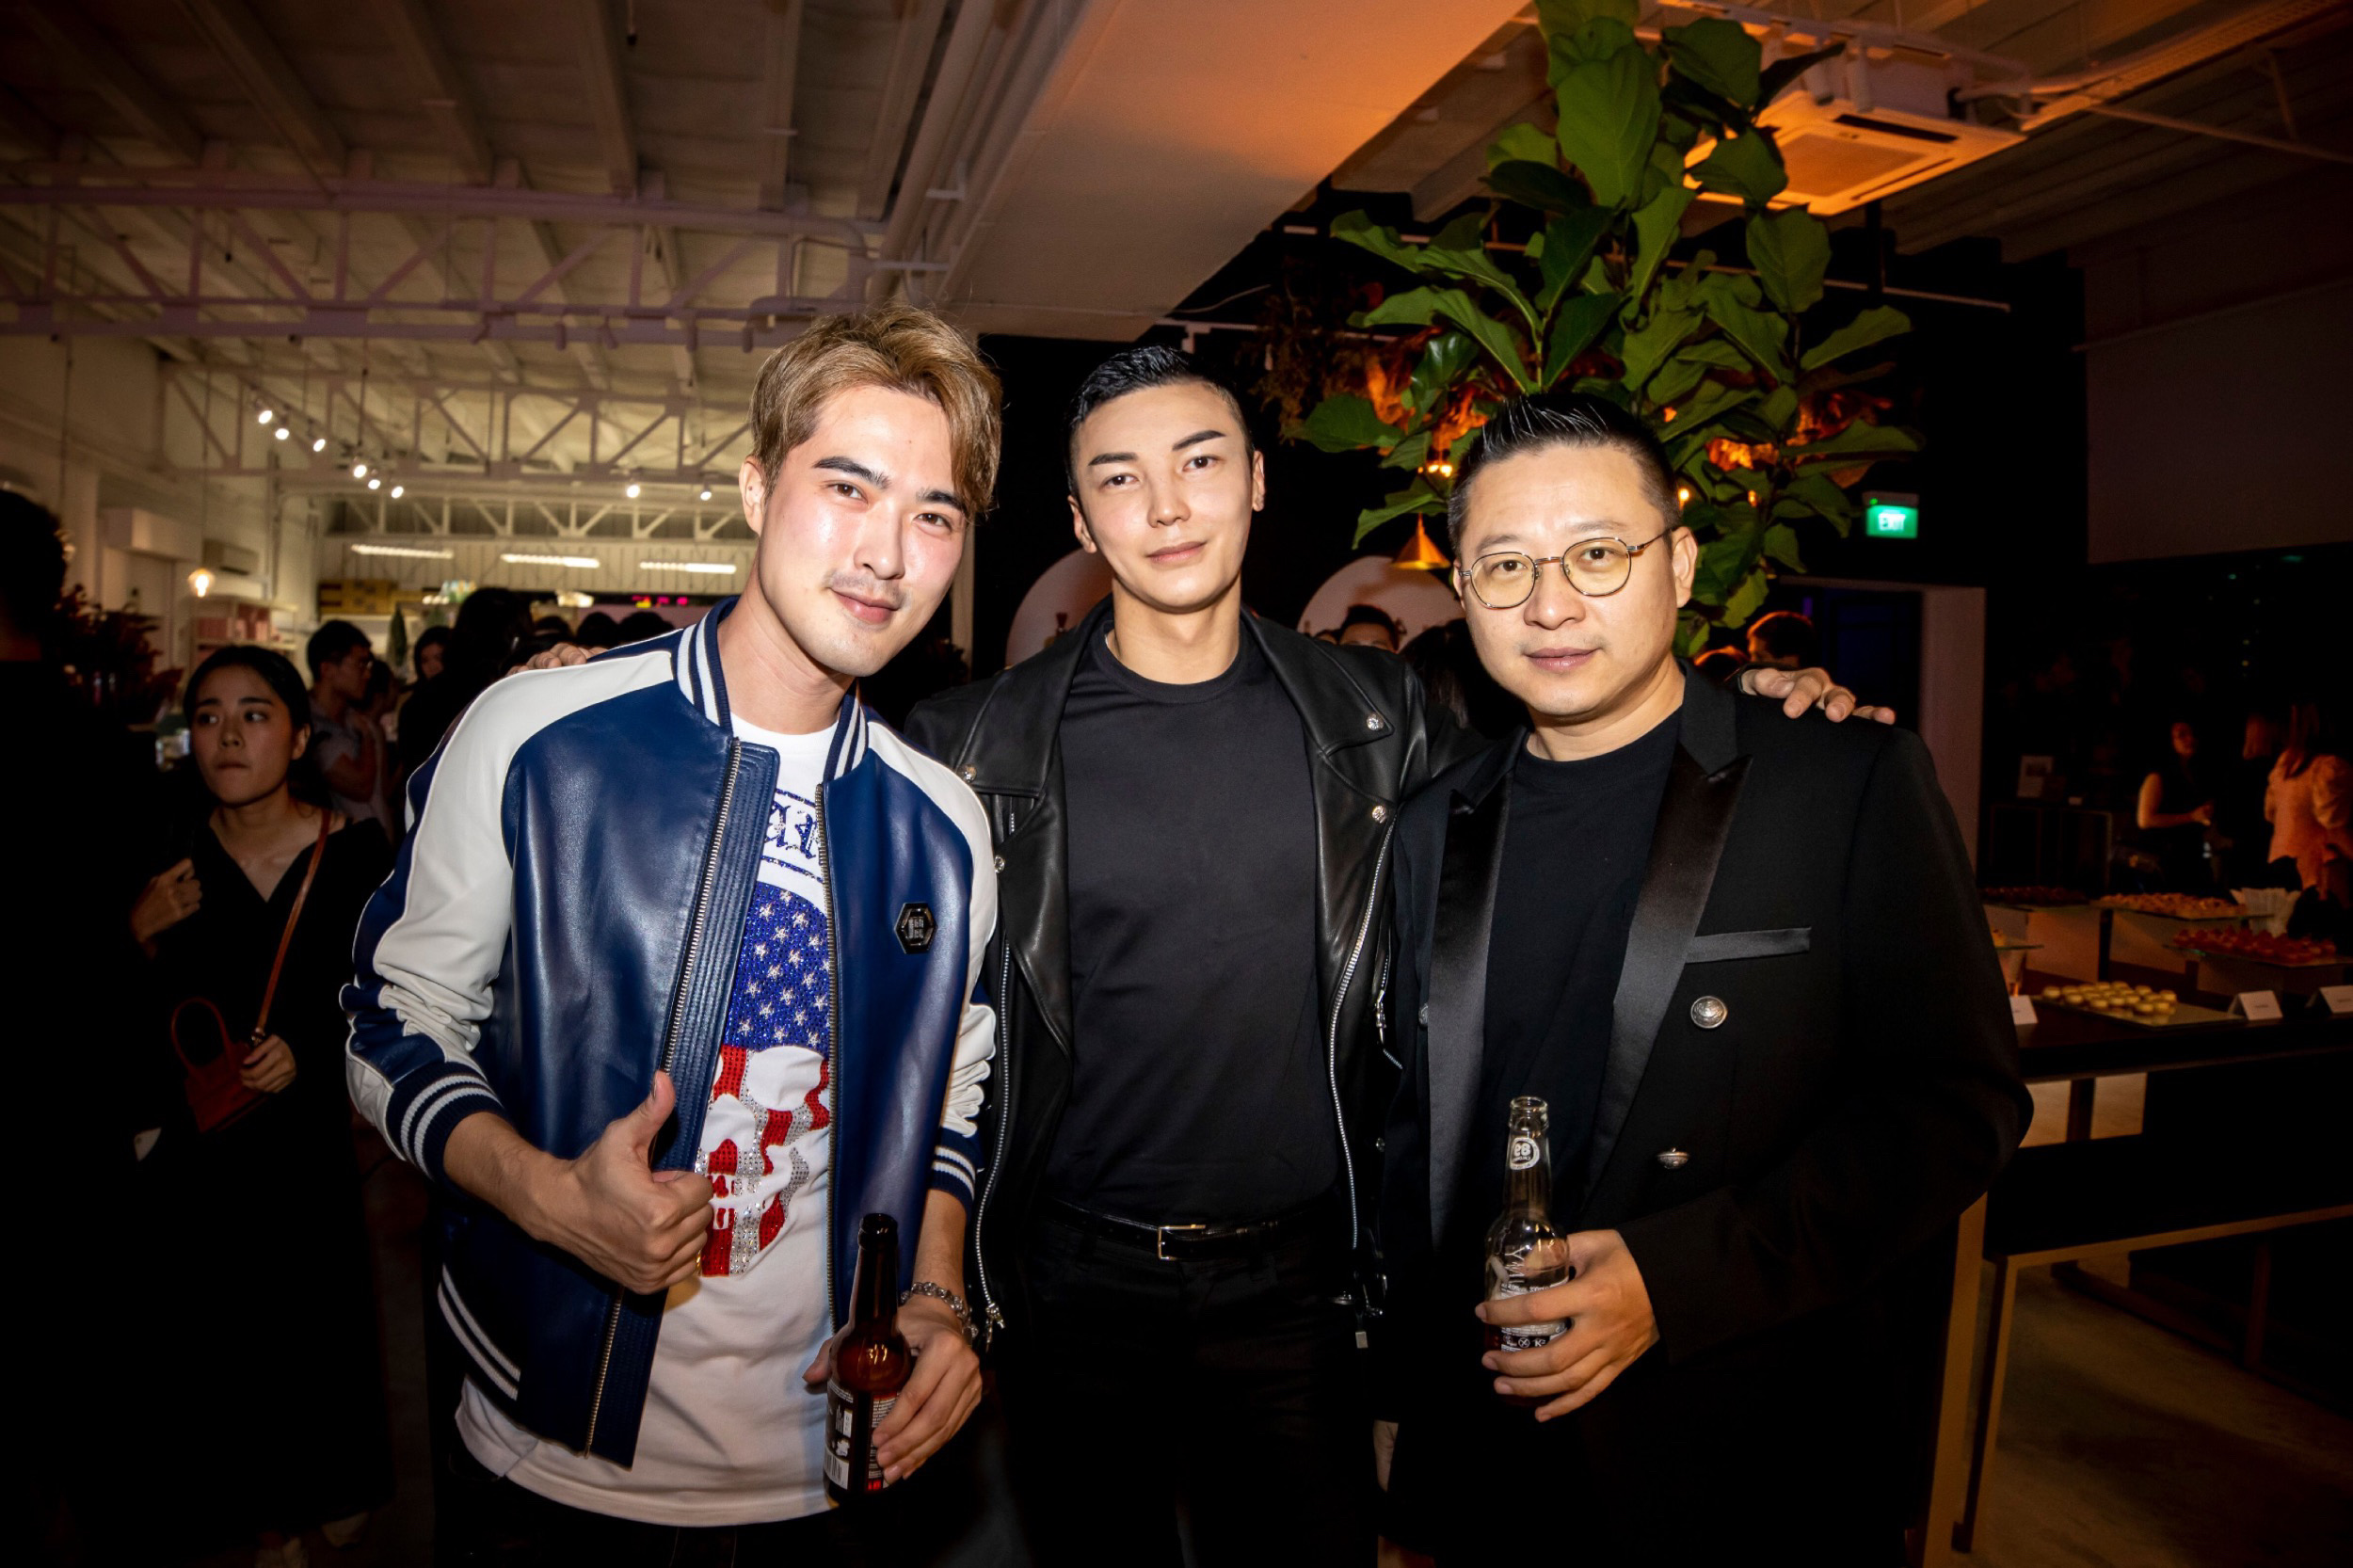 Ethan Lee Teng, Jumius Wong and Paul Chen